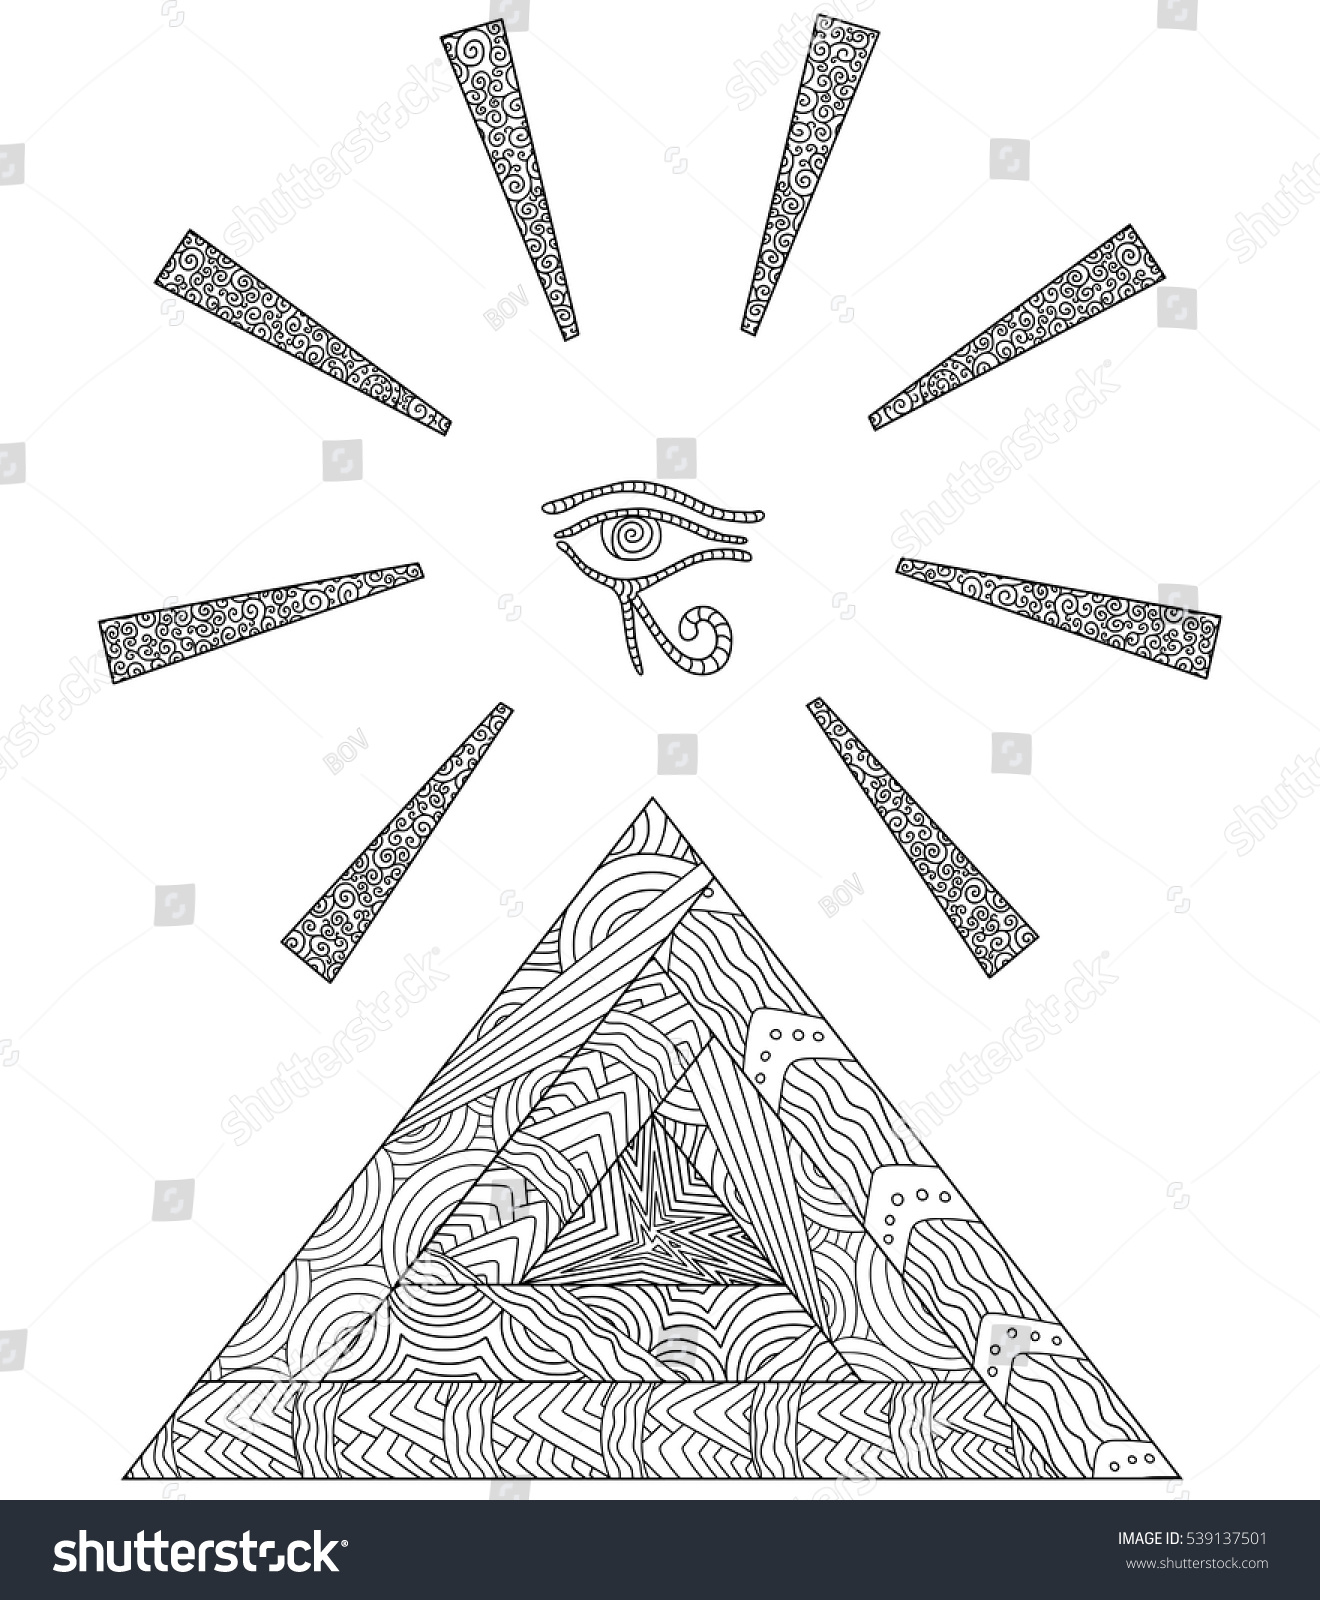 Doodle coloring book symbol egyptian pyramids stock vector doodle coloring book with the symbol of the egyptian pyramids and the eye of horus biocorpaavc Gallery